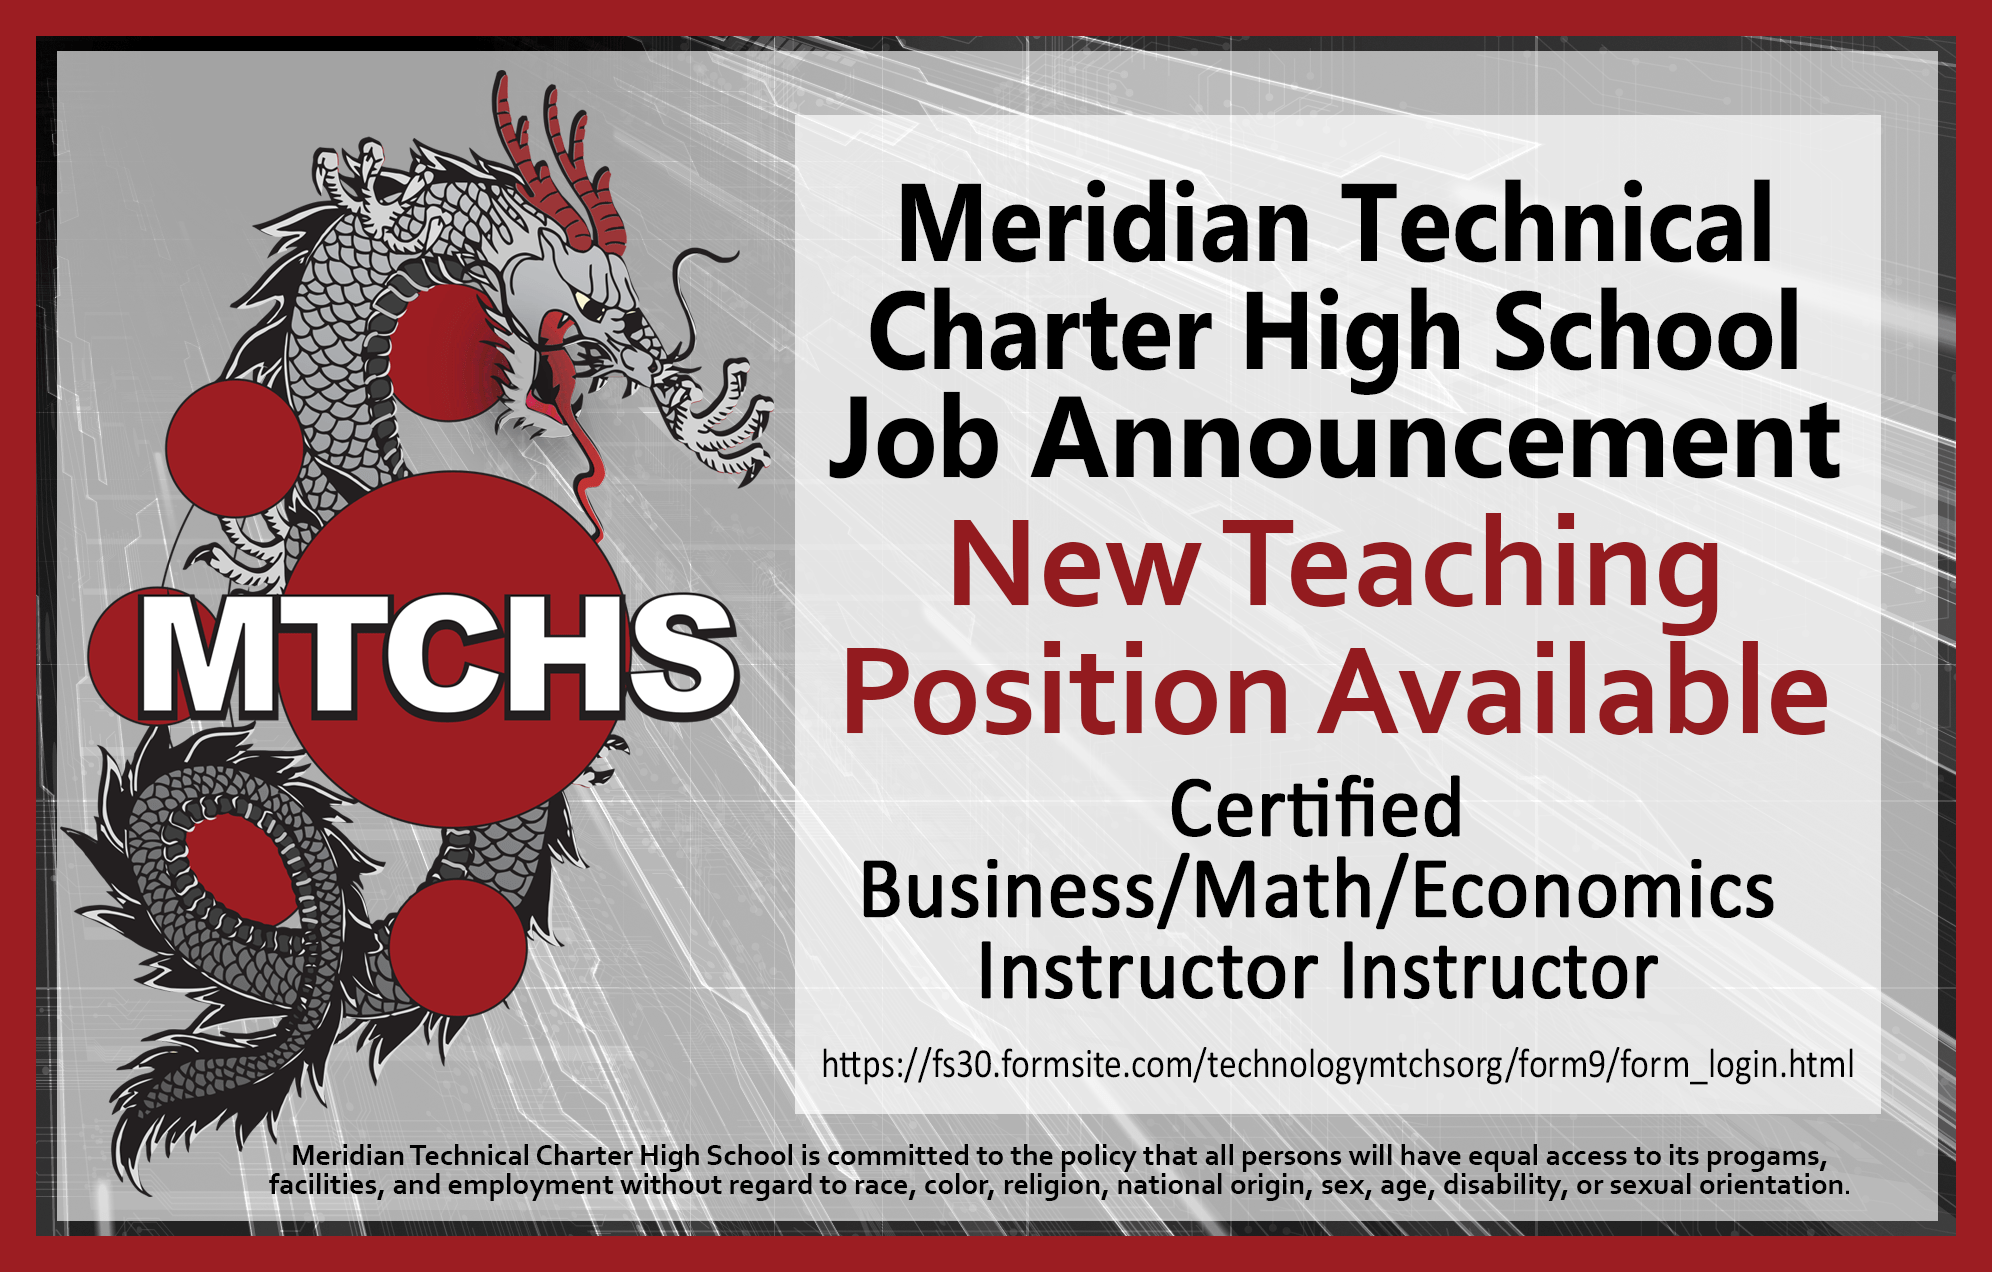 Second MTCHS Job Opening